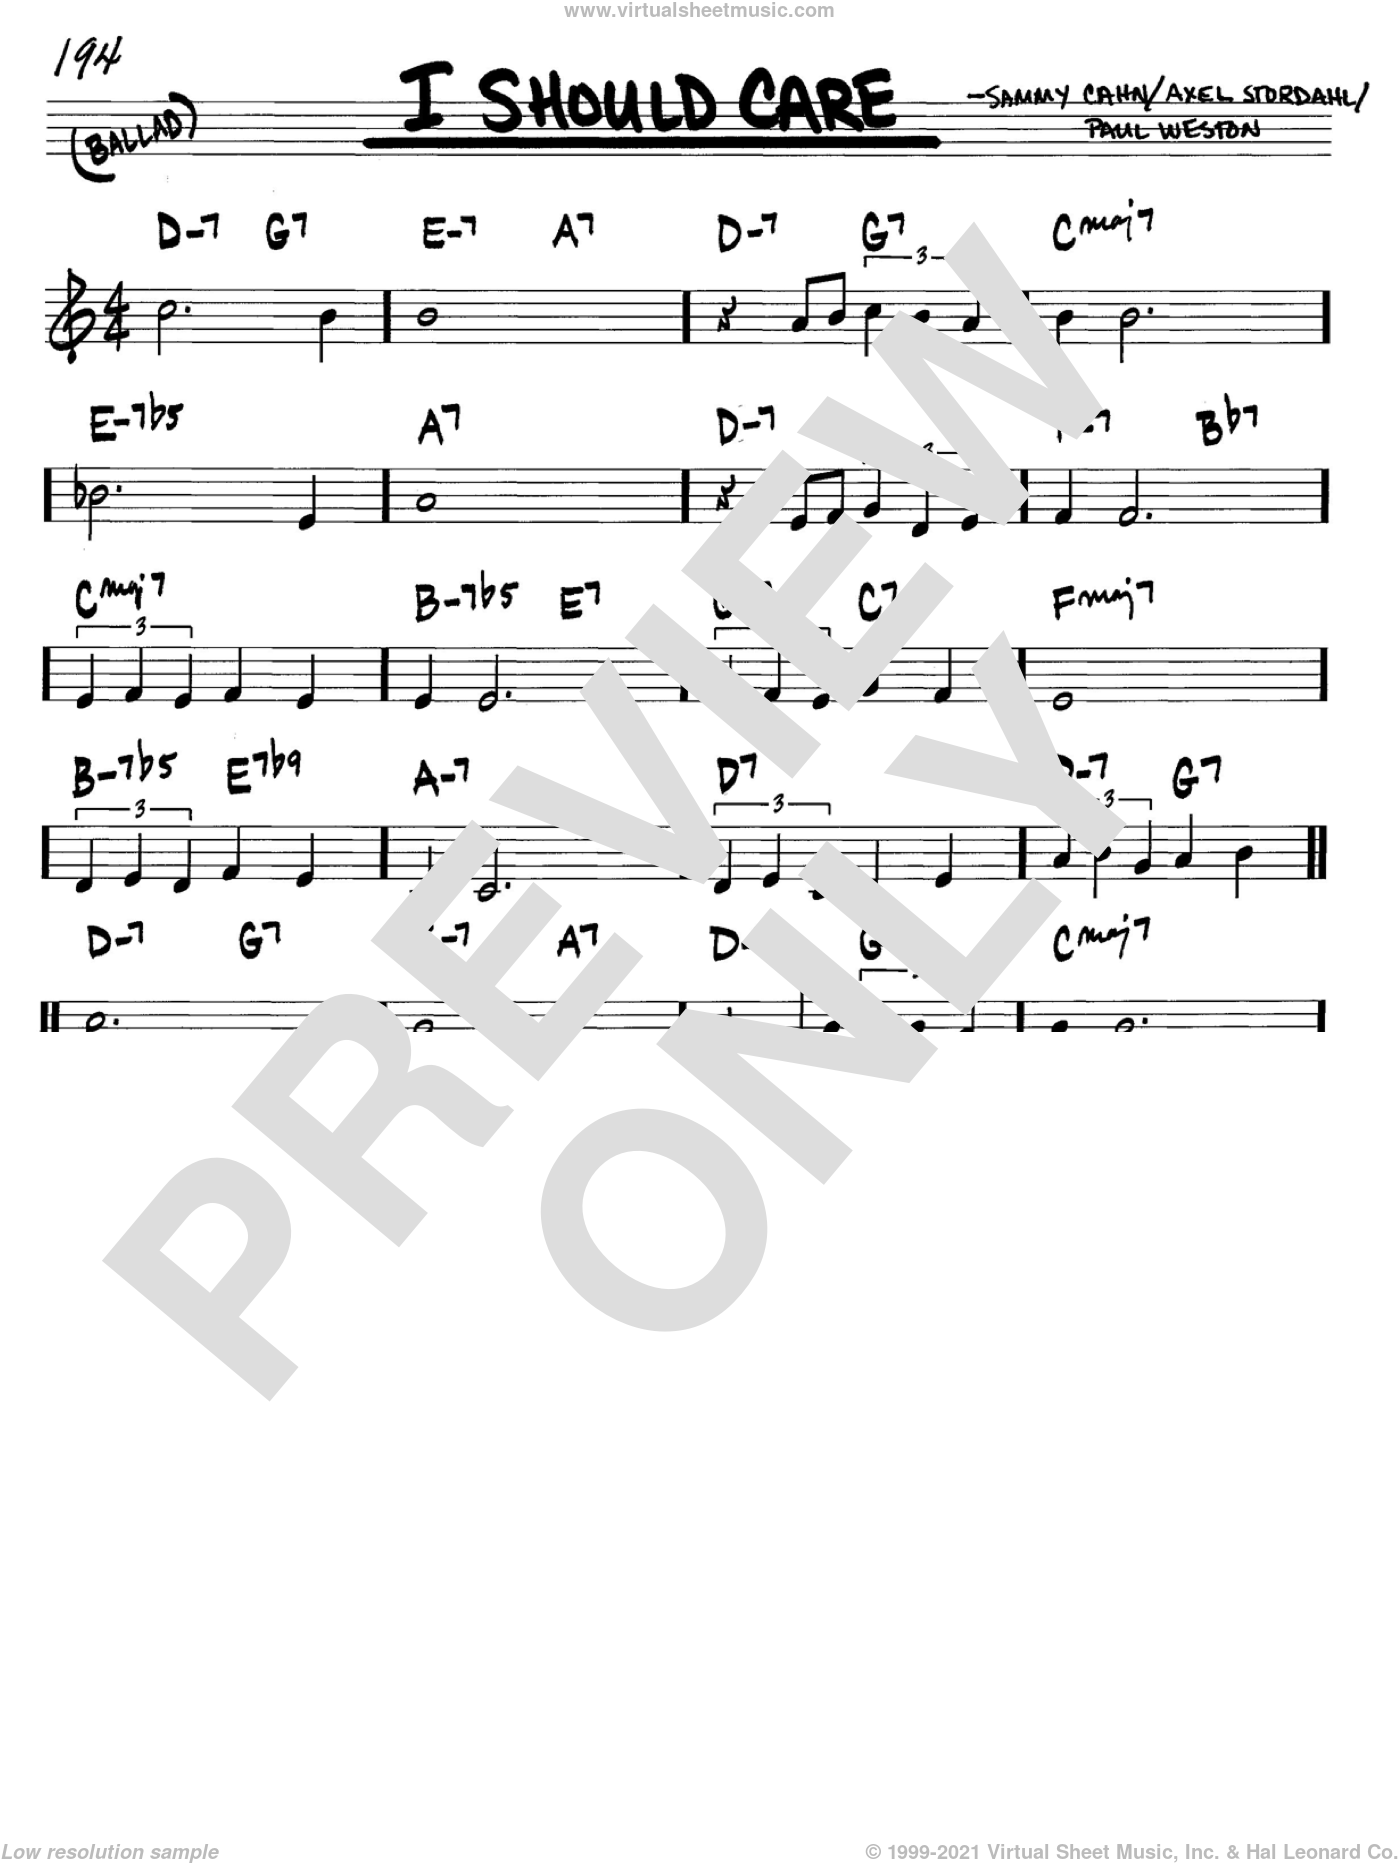 I Should Care sheet music for voice and other instruments (C) by Paul Weston